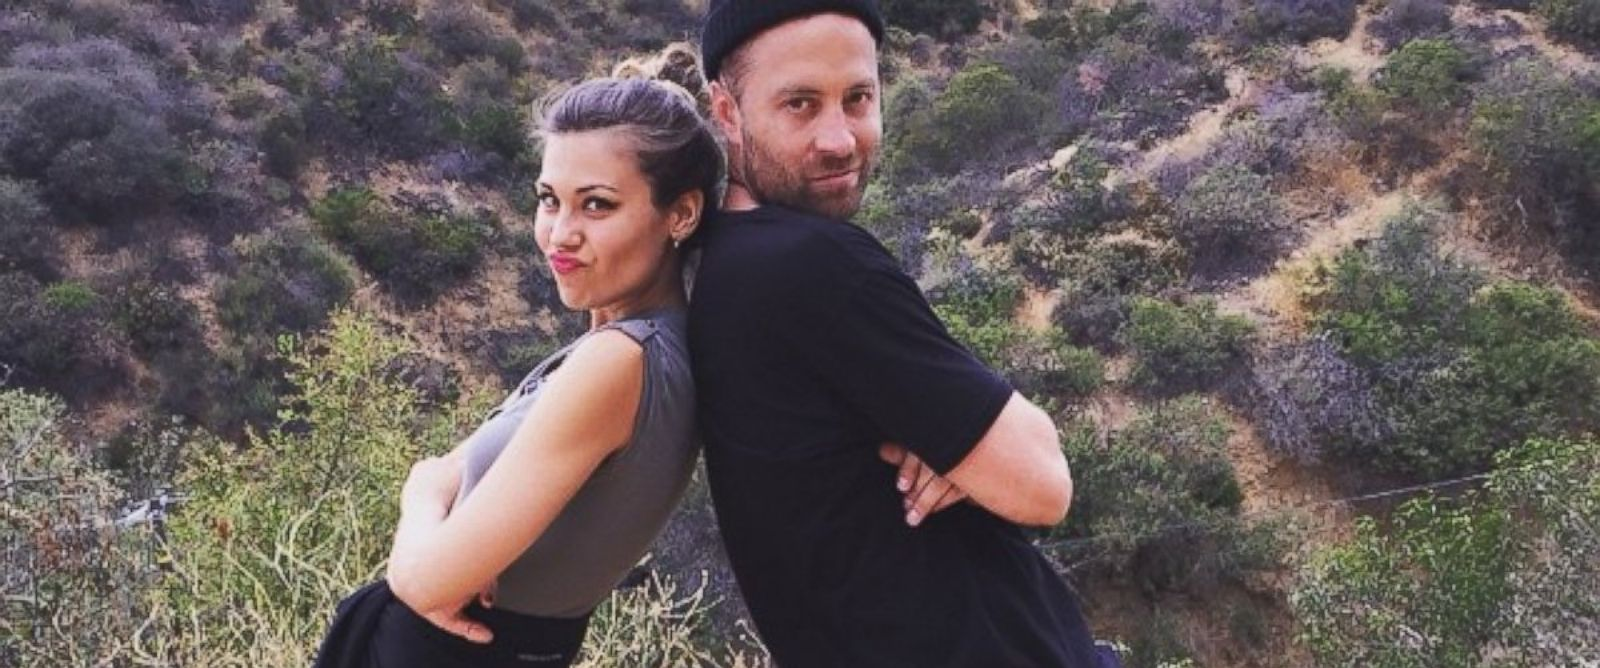 is britt still dating bachelorette The bachelorette's britt nilsson and brady toops: we actually split 2 months ago rick rowell/abc aili nahas  still, toops says he has no regrets about leaving the show for nilsson.